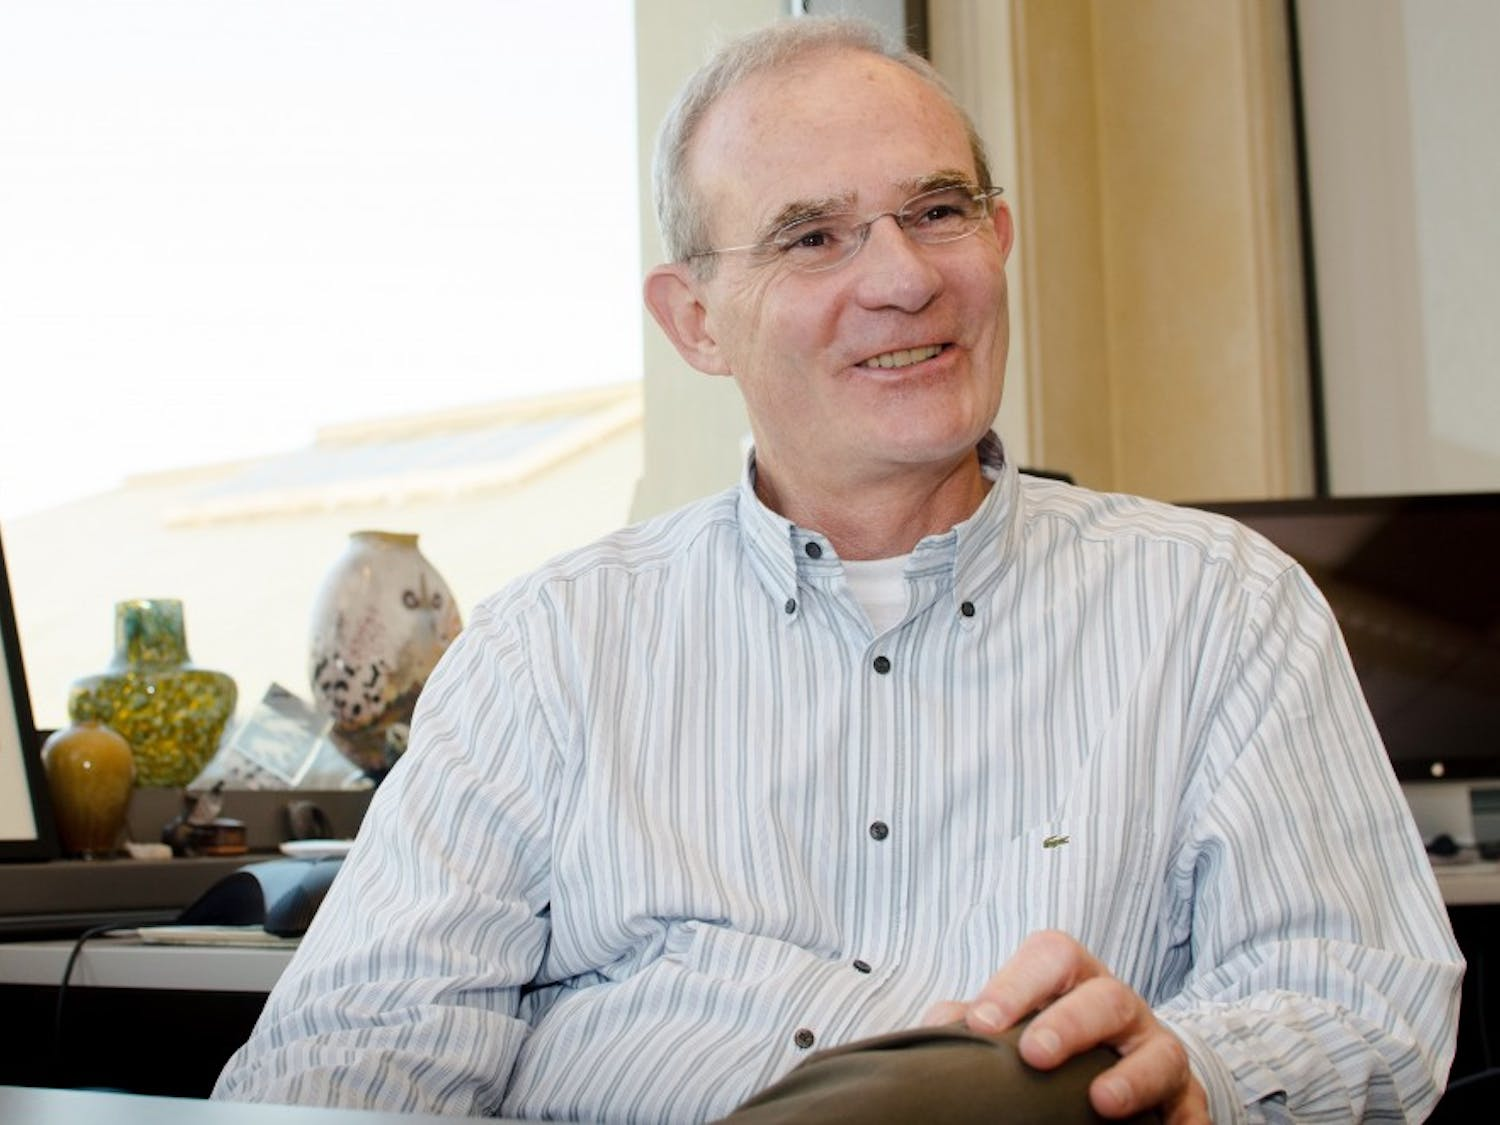 Terry R. Magnuson, Ph.D., Sarah Graham Kenan Professor and chair, department of genetics, and vice dean for research, School of Medicine, University of North Carolina, Chapel Hill, was elected to the Institute of Medicine in October.